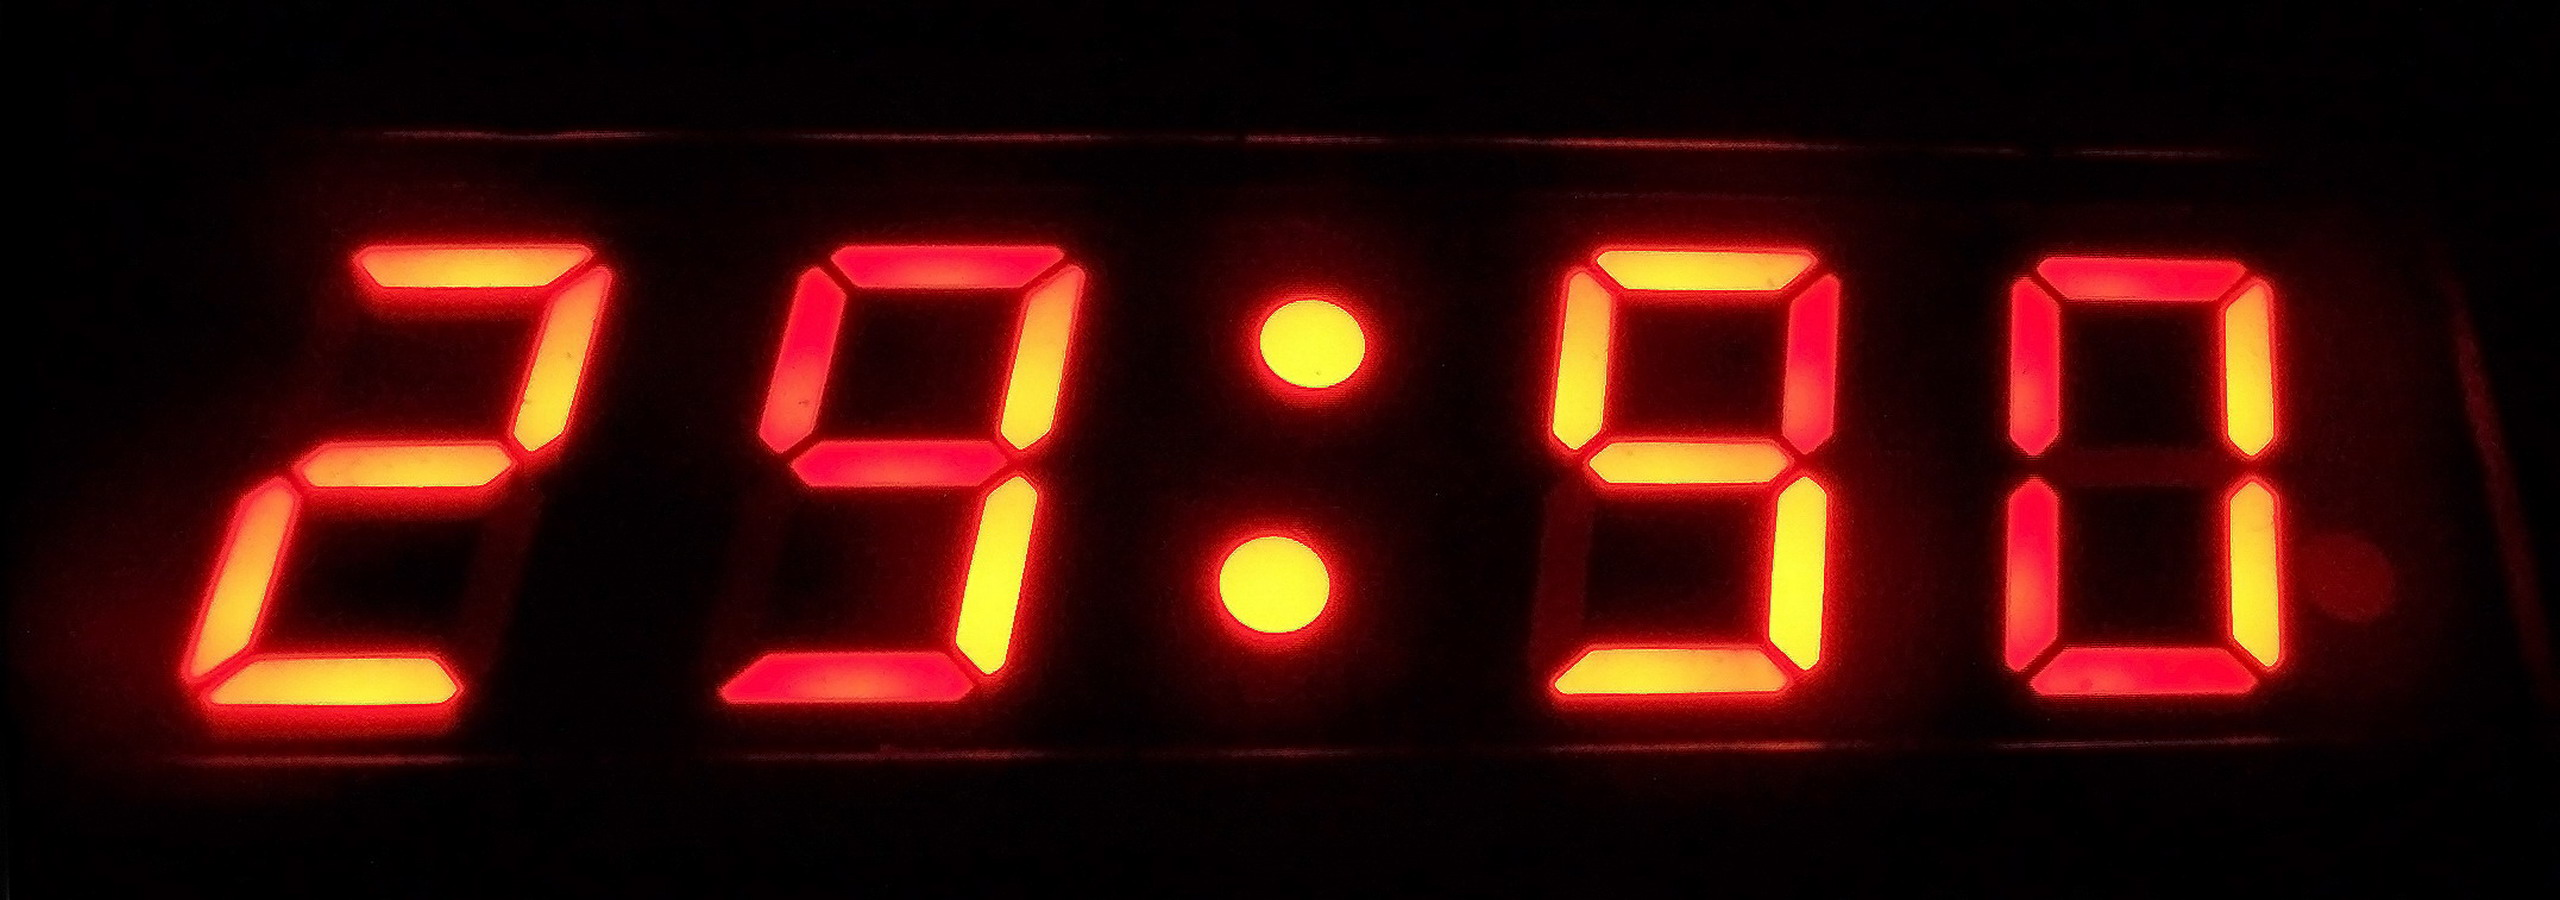 File digital clock changing numbers